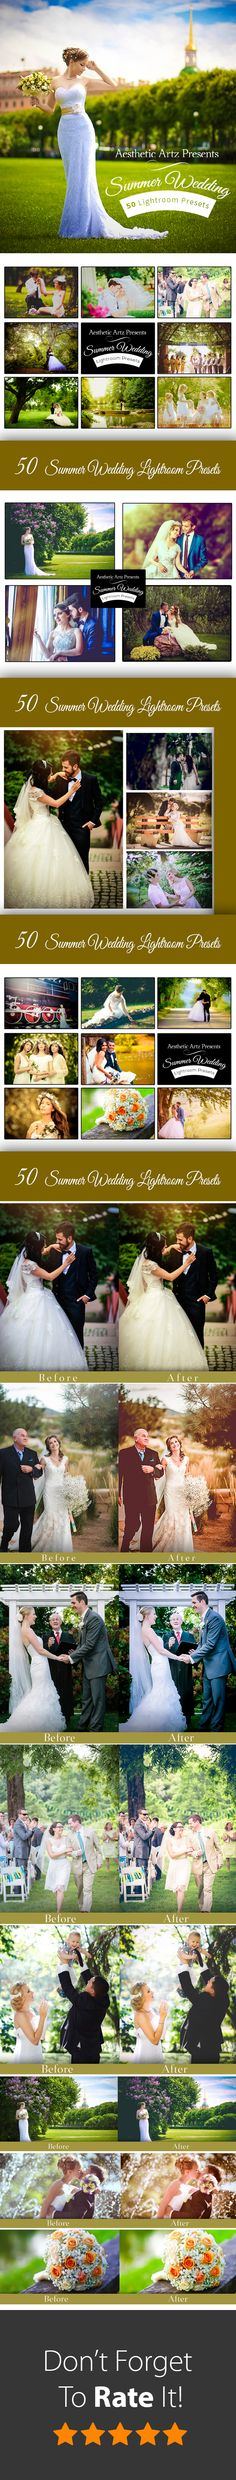 50 Vintage Wedding Lightroom Presets Photographers And Photography